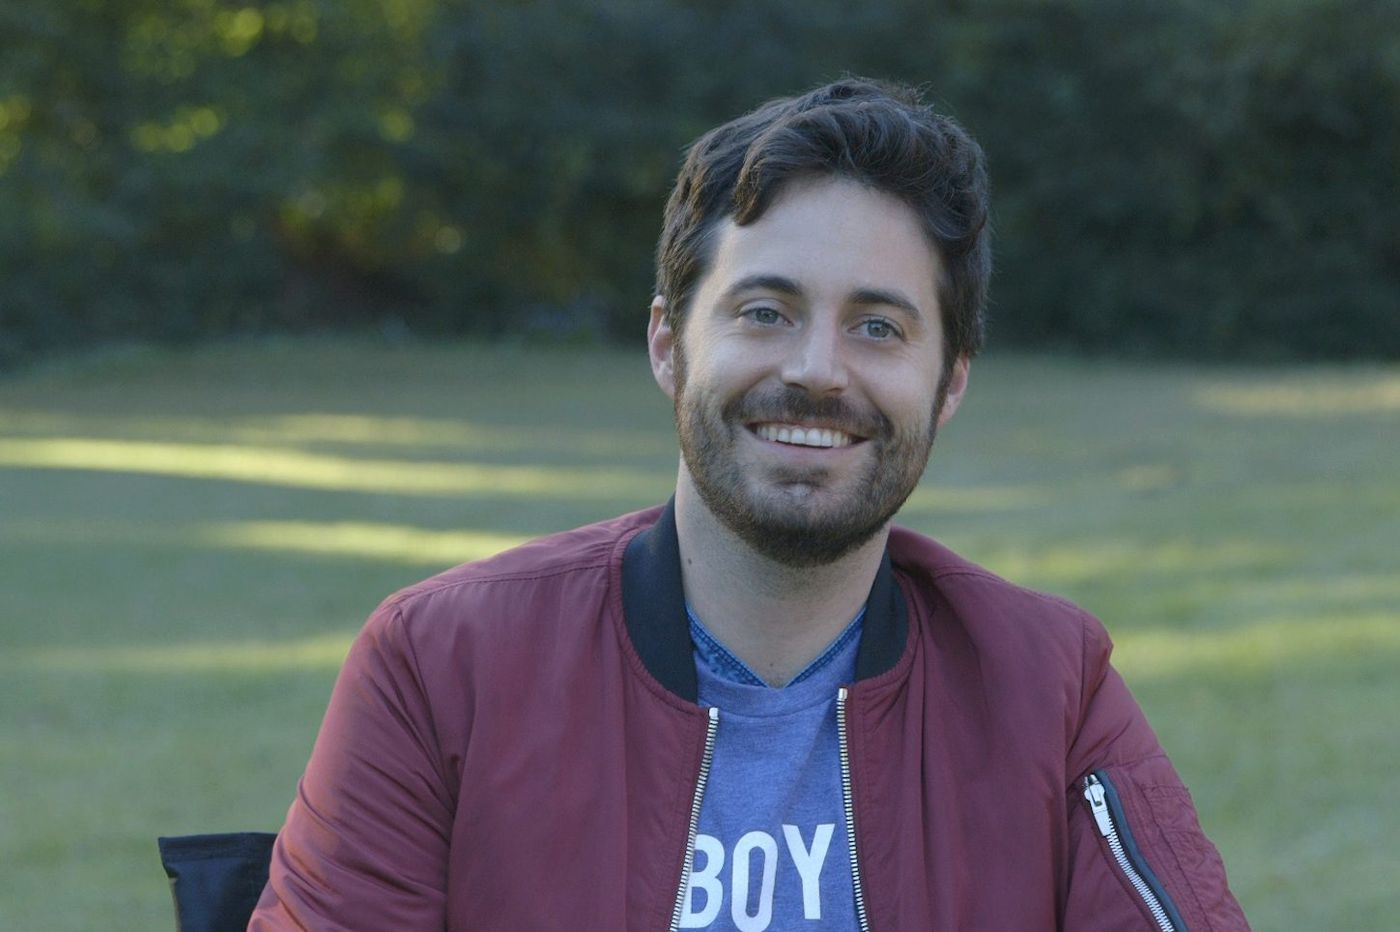 'God was used as a weapon against me': How gay conversion therapy tore Garrard Conley away from his faith